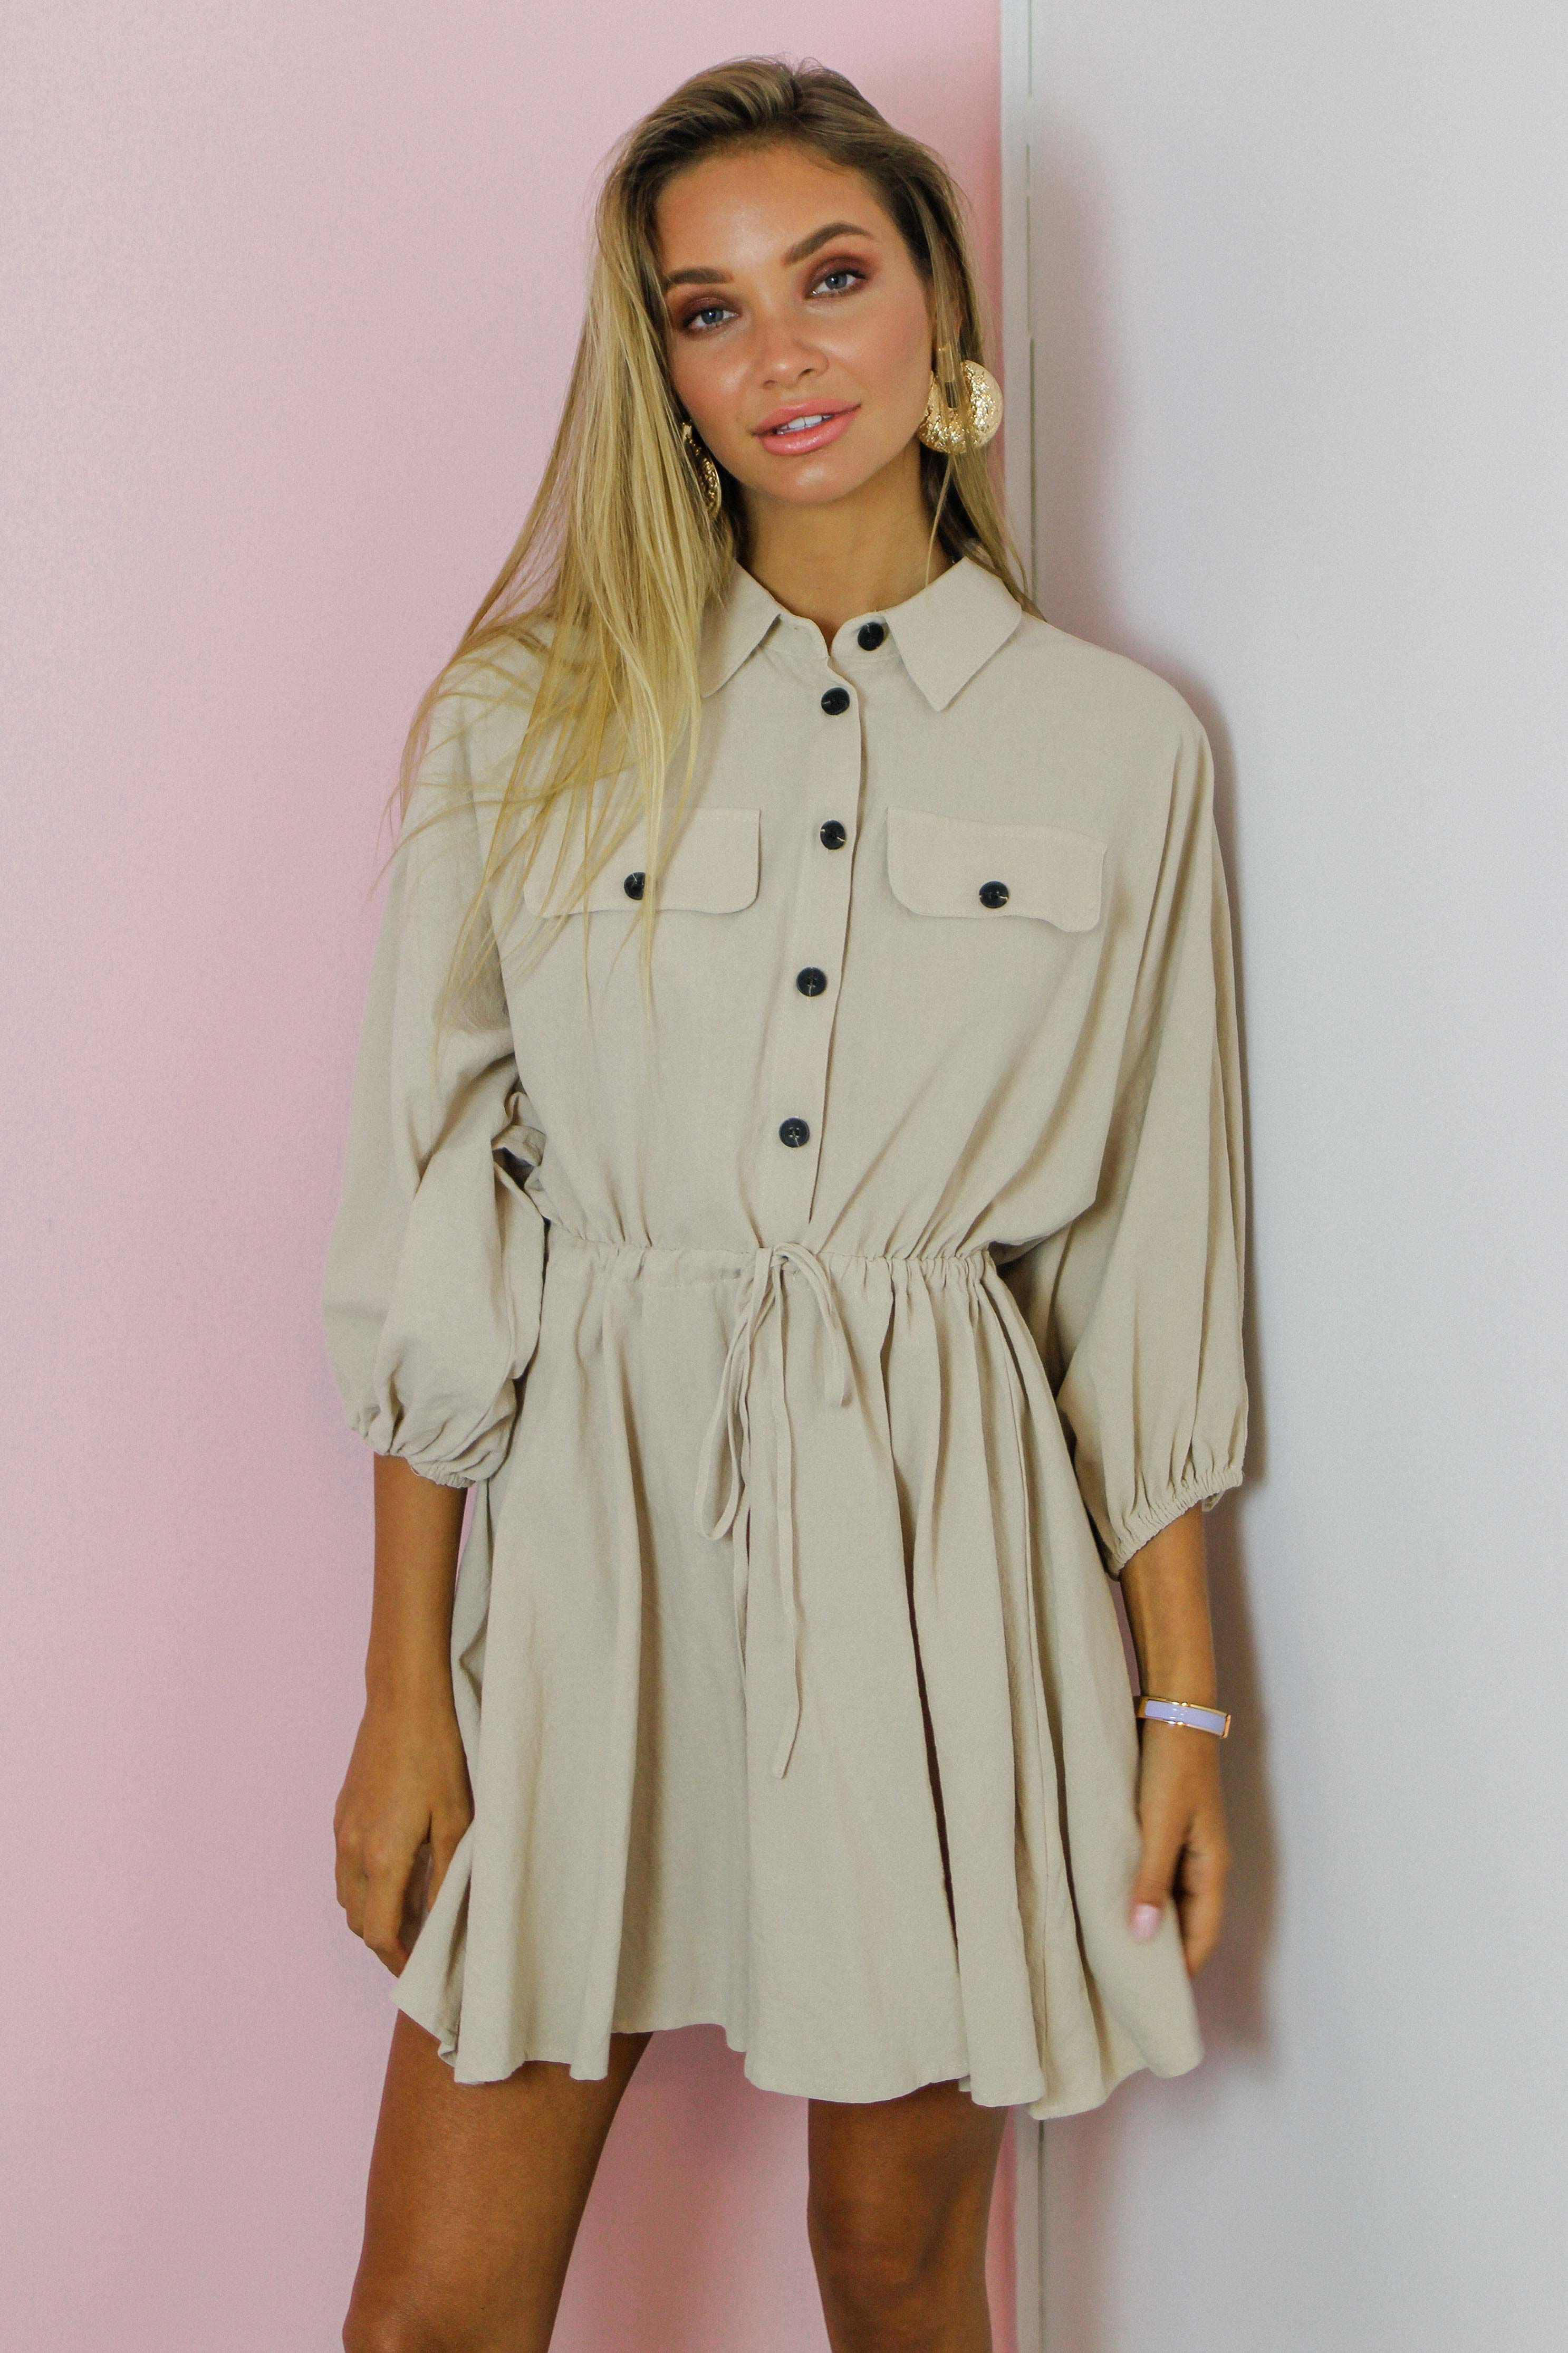 BONNIE DRESS | Women's Online Shopping | CHICLEFRIQUE  (2121534046297)